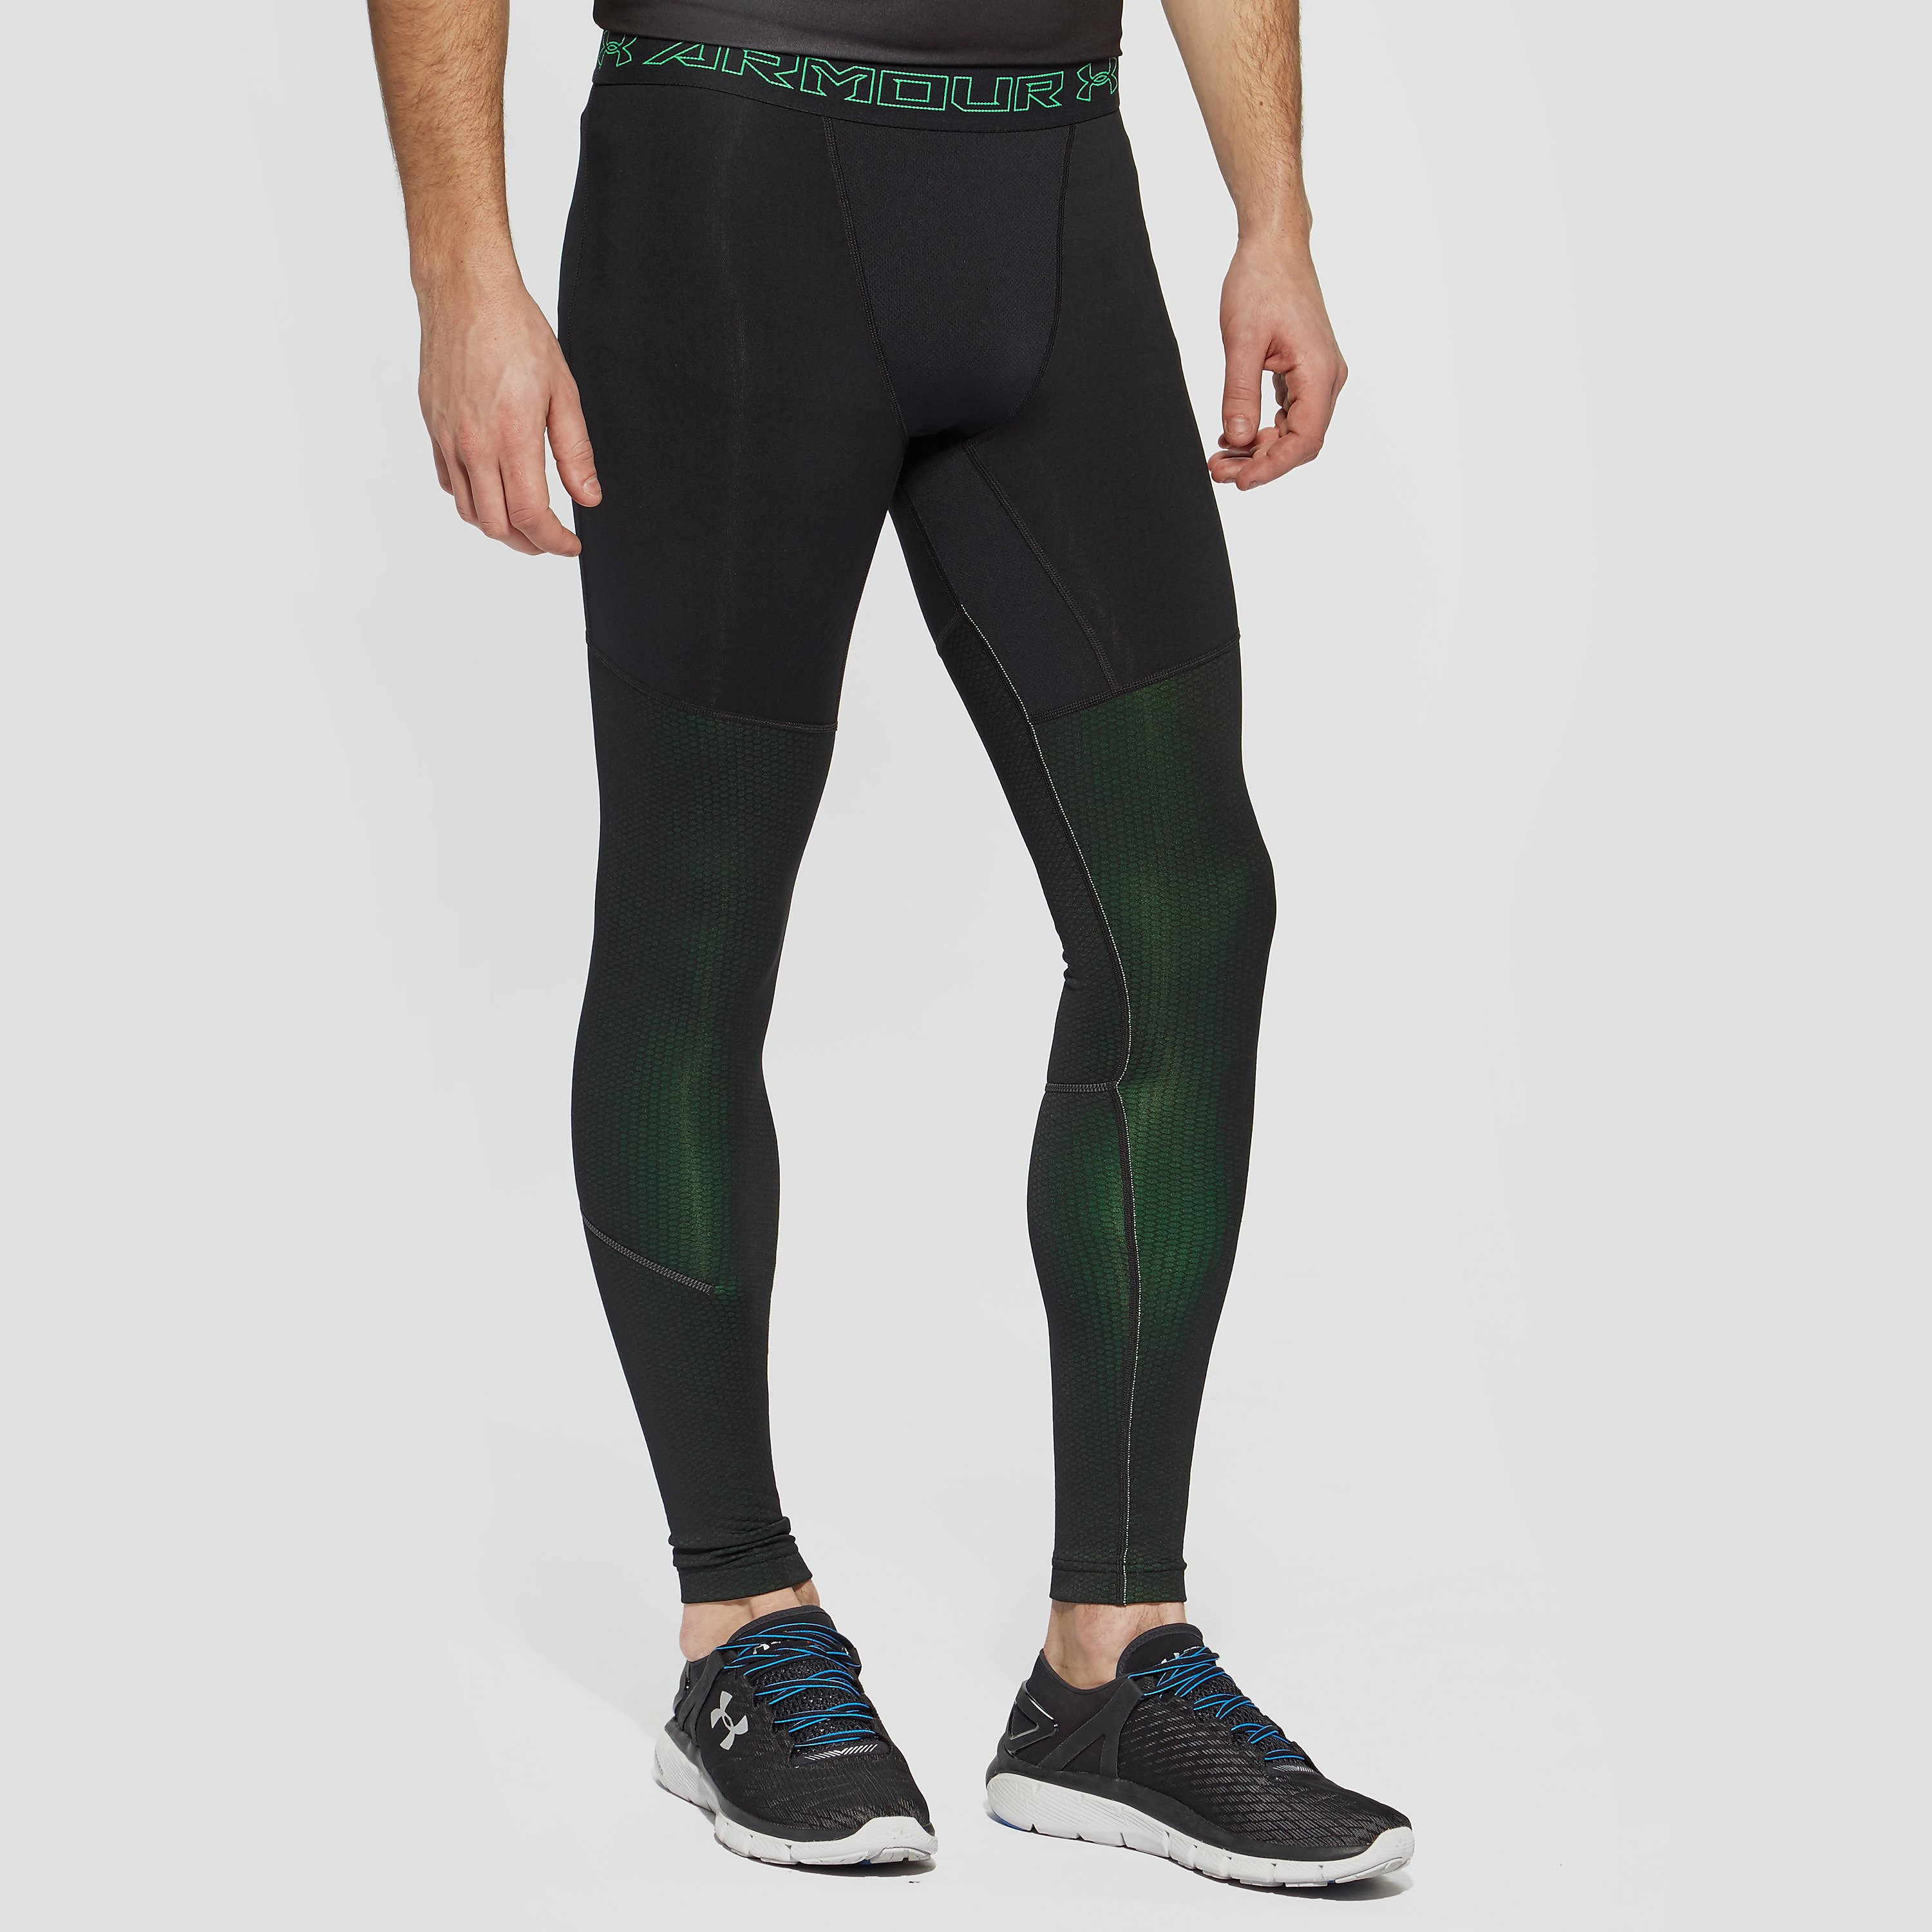 Under Armour ColdGear Armour Elements Men's Leggings